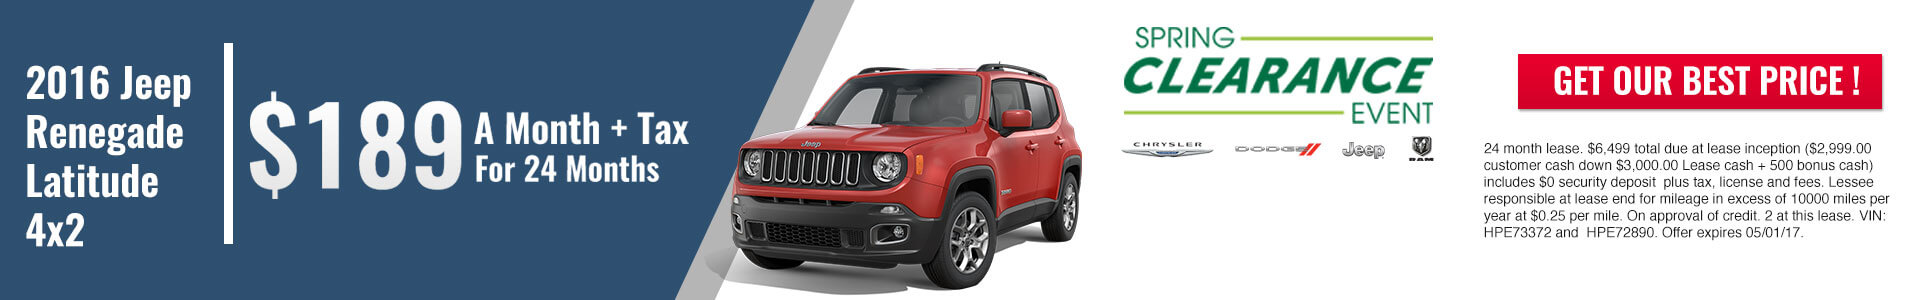 Jeep Renegade SRP